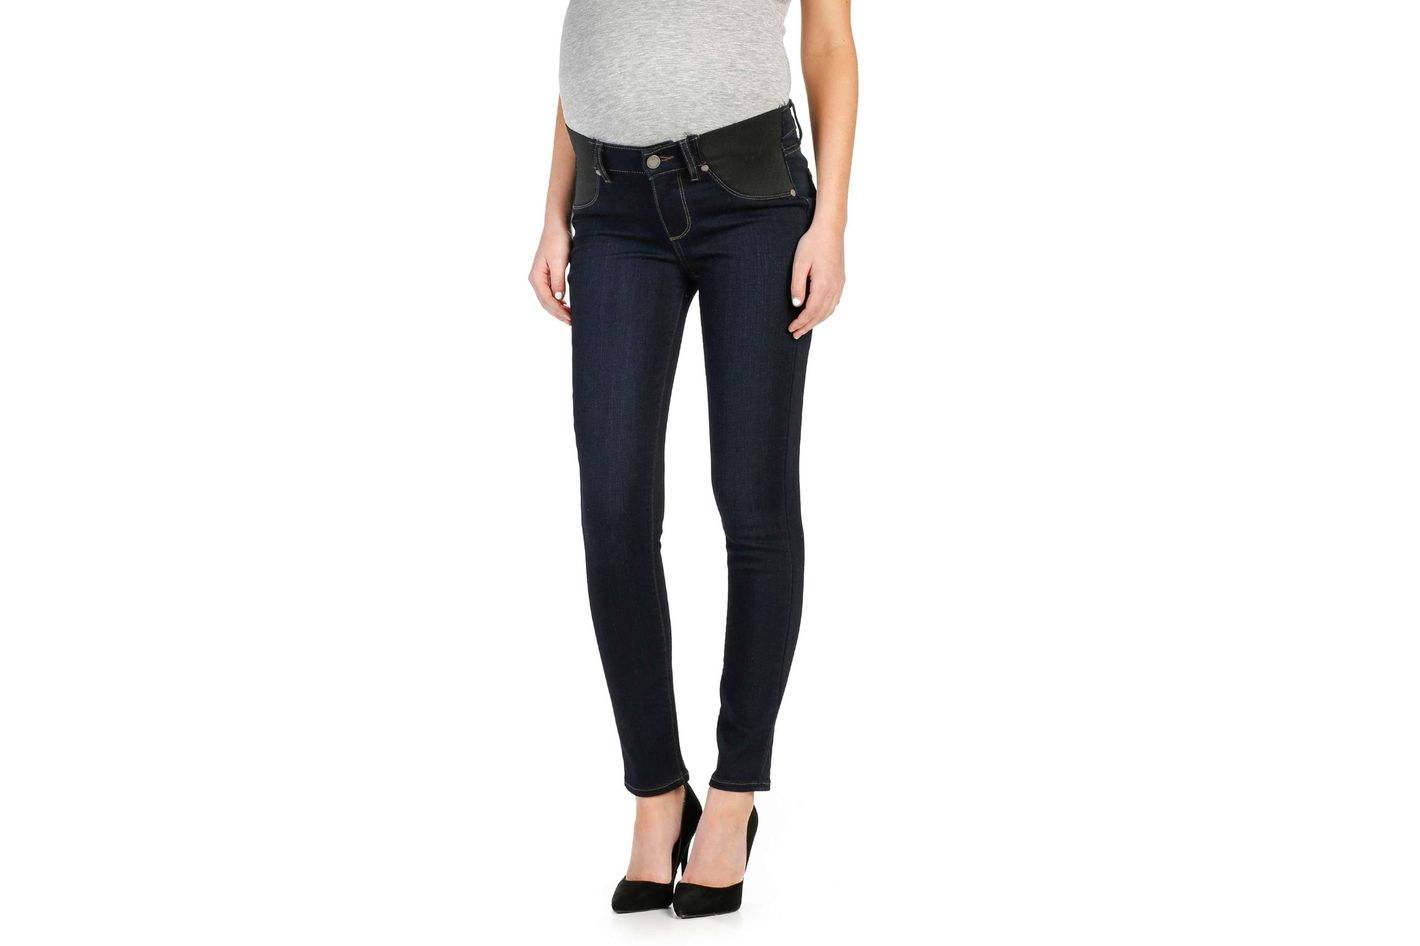 Paige Transcend Verdugo Ankle Skinny Maternity Jeans